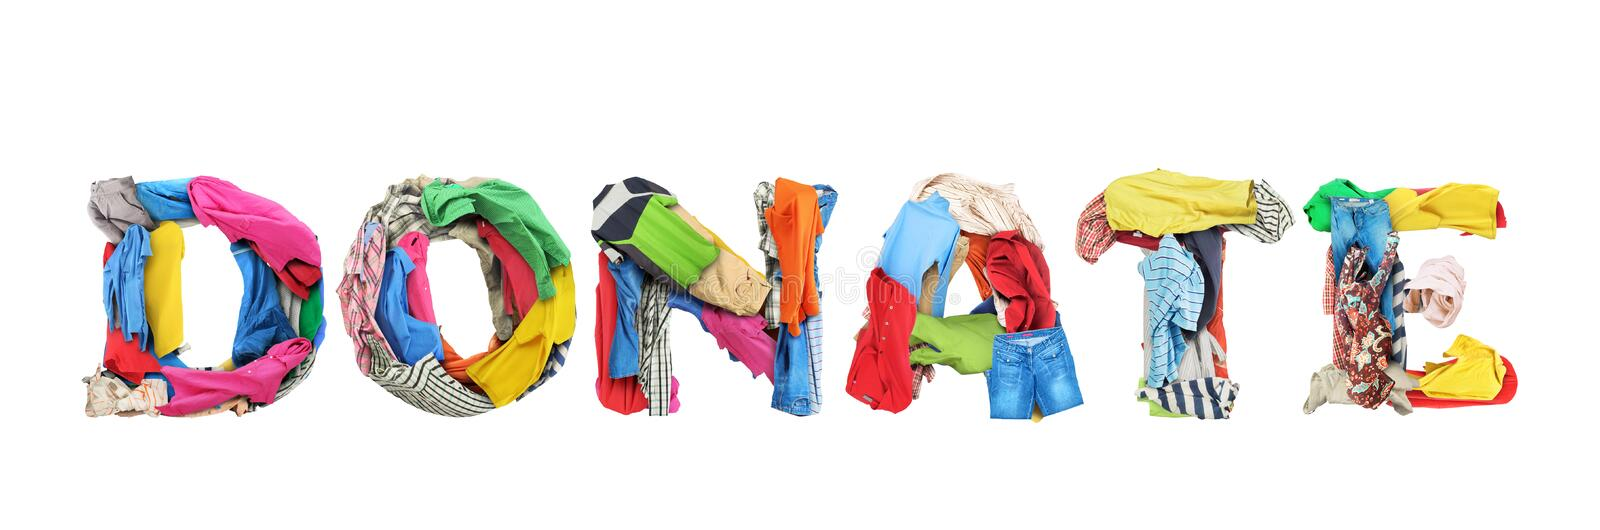 Donate sign made of clothes isolated on white background stock photos